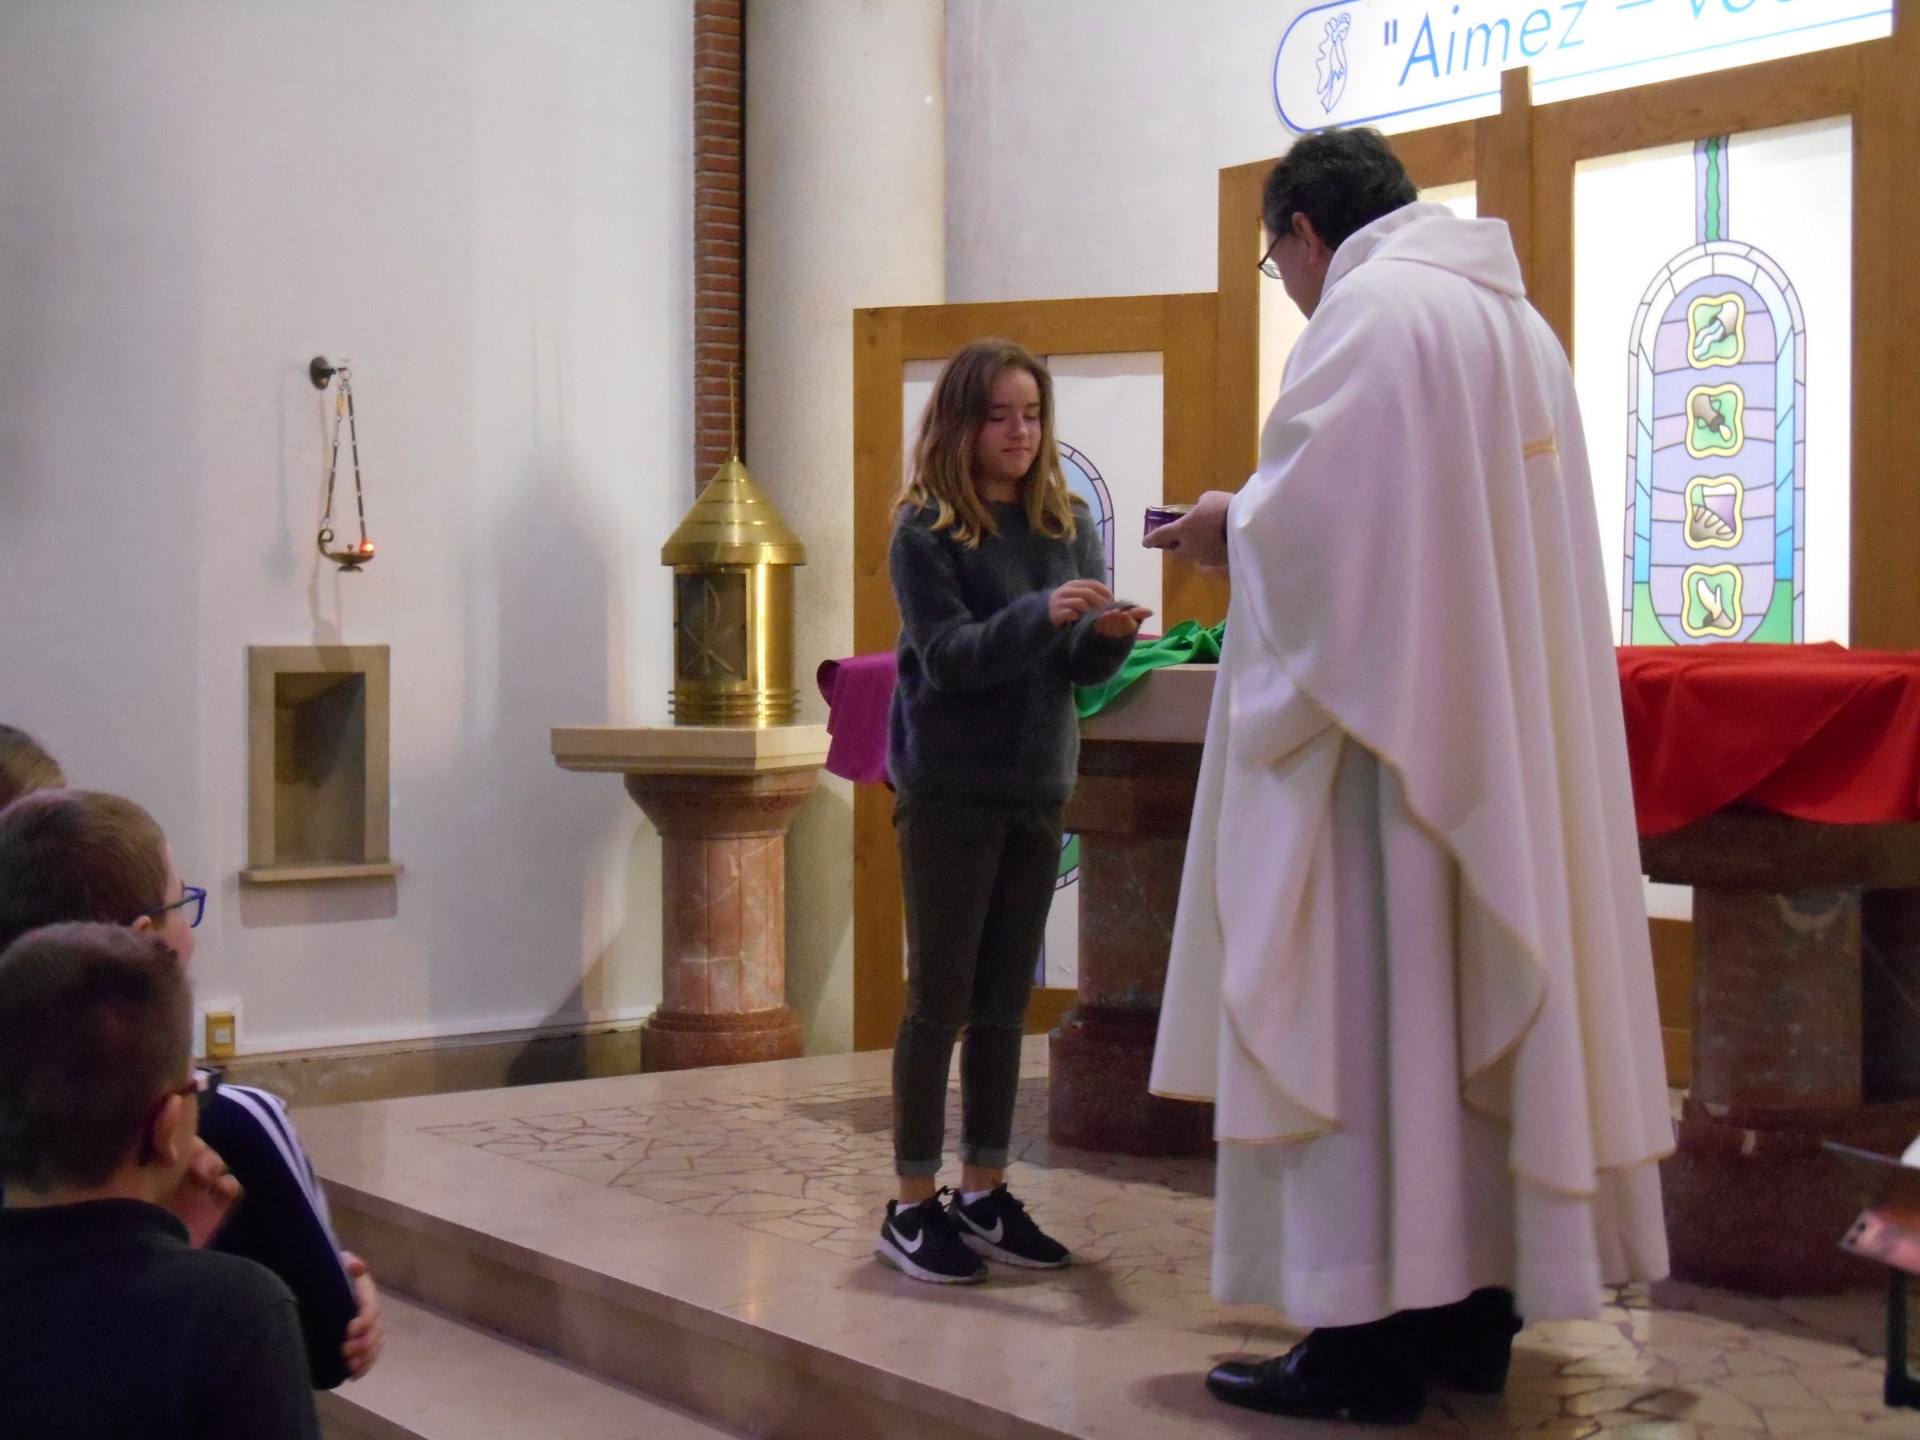 Images - Stald - Retraite de premie#re communion -